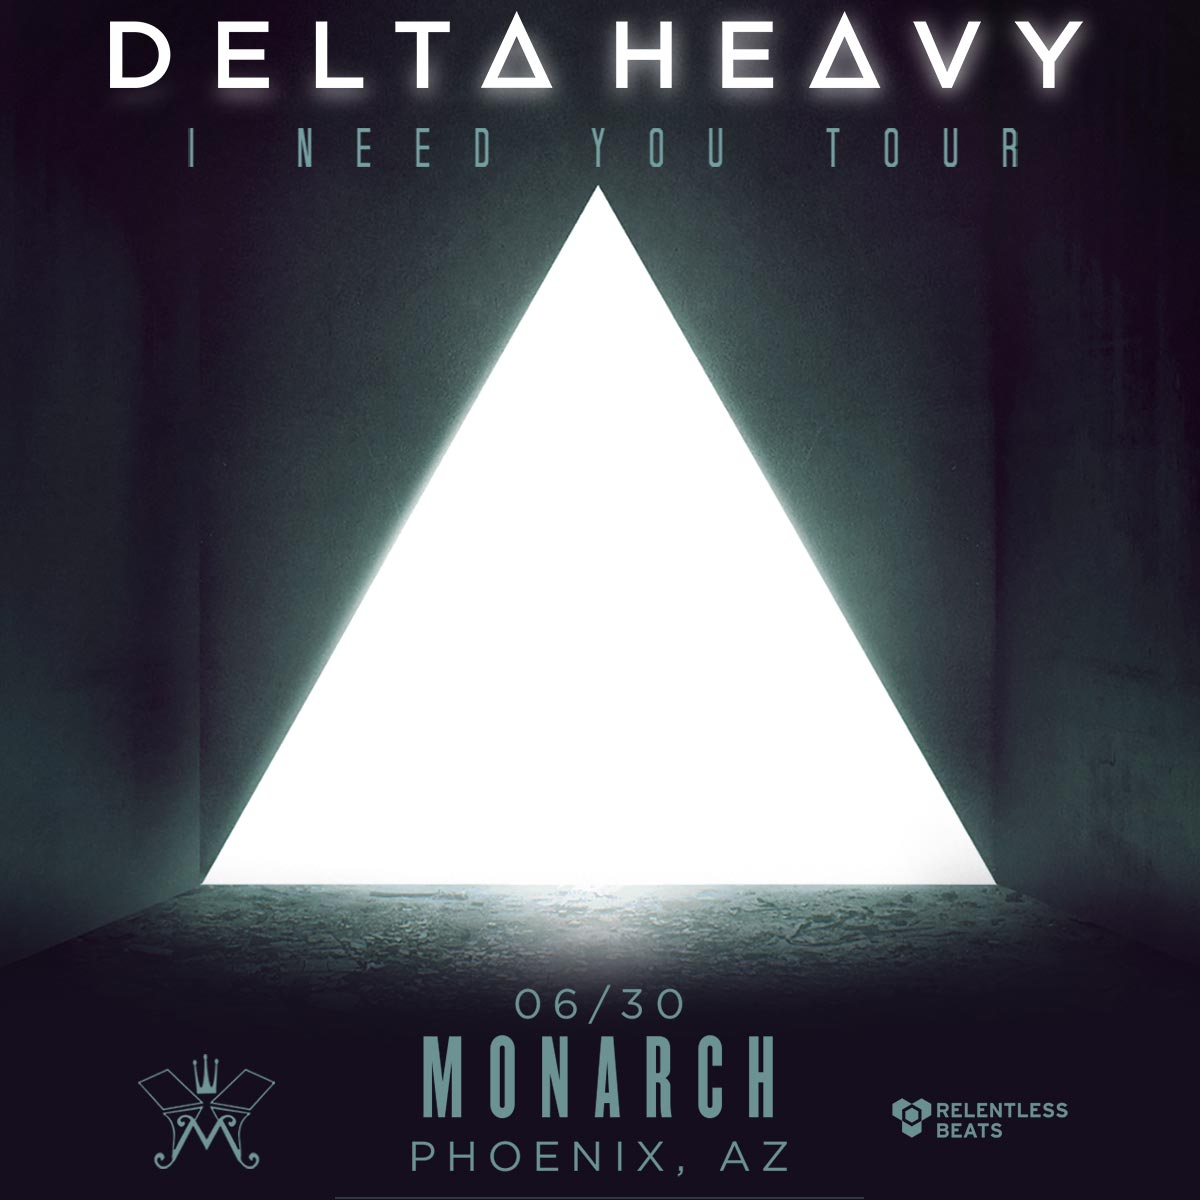 Flyer for Delta Heavy